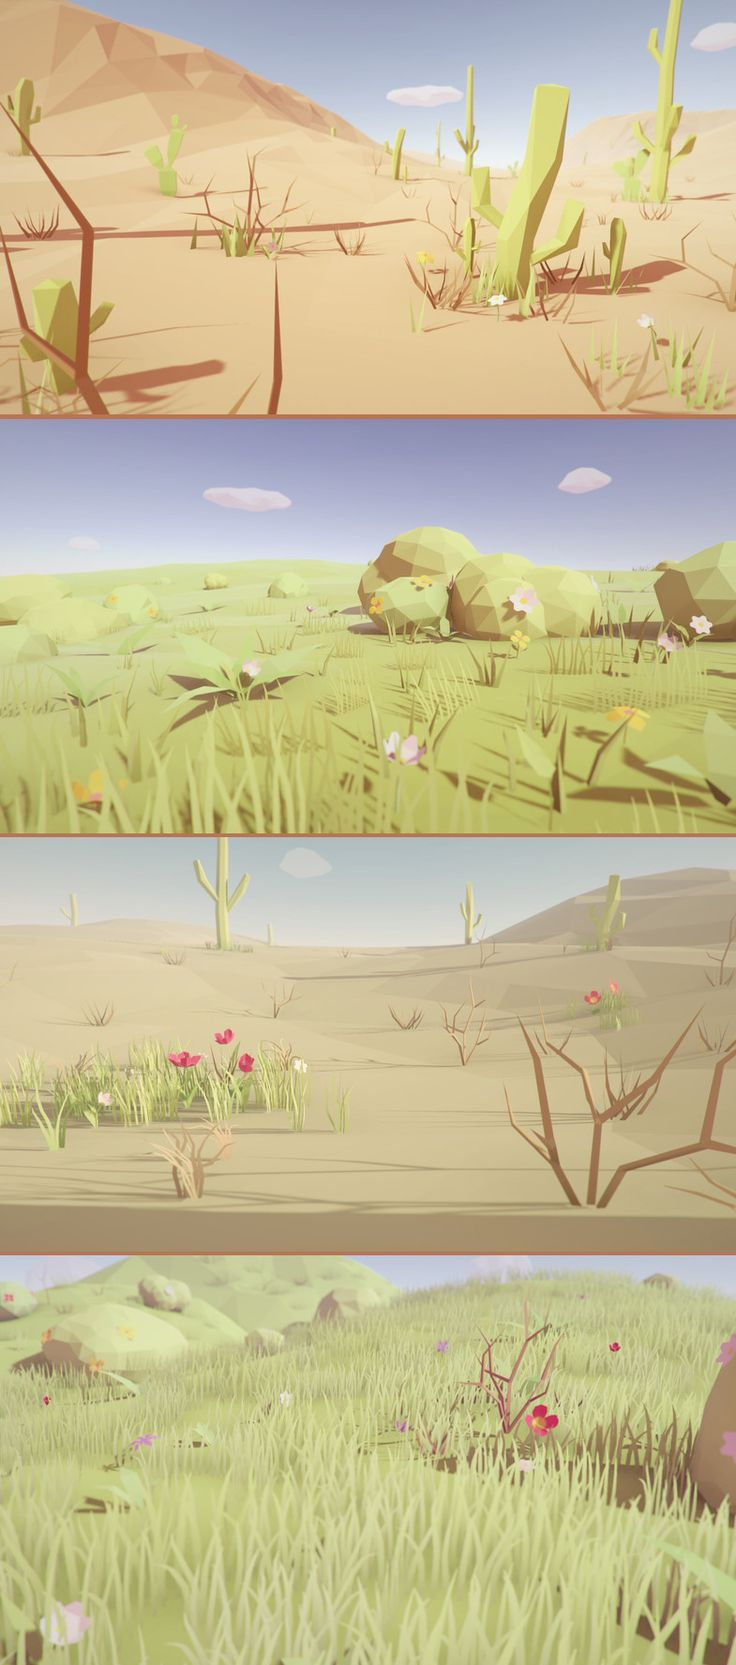 Low Poly Vegetation Pack This package contains a huge variety of different plants, grass, bushes, and other plants ready to use for your game levels. Just drag and drop prefabs to your scene and achieve beautiful results in no time. PC & mobile friendly assets.